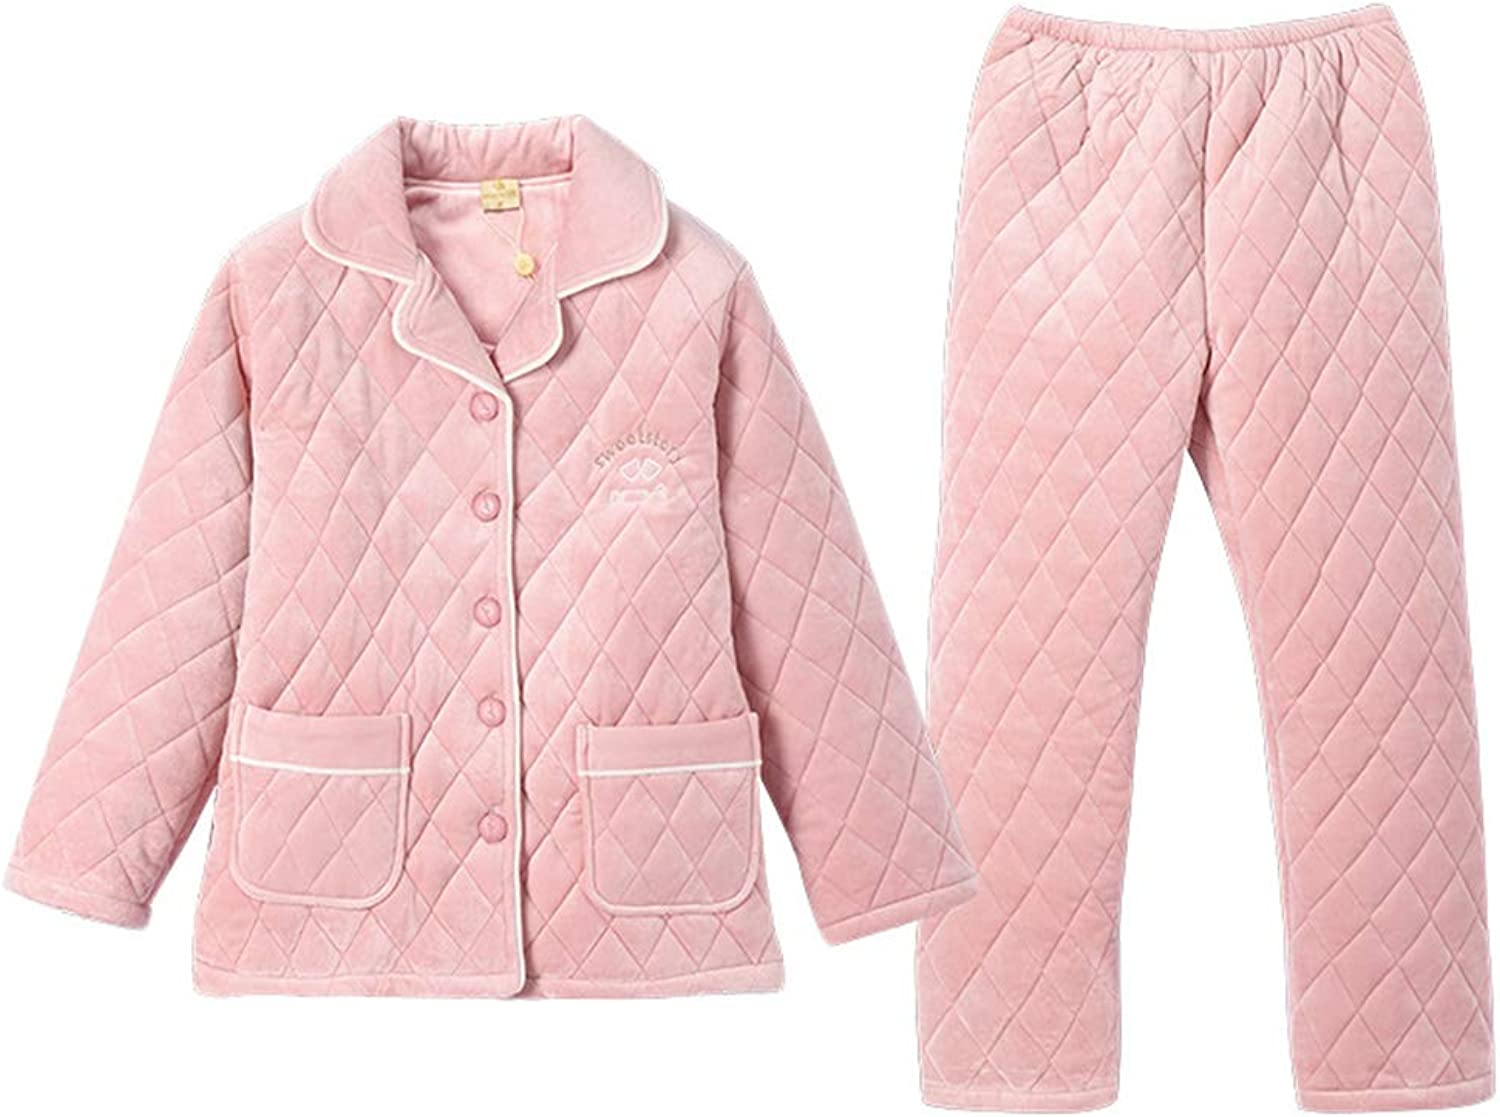 Pajamas Autumn and Winter Coral Fleece Quilted Couple Pajamas Suit Female Thickening Plus Velvet Home Service (color   Pink, Size   XL)